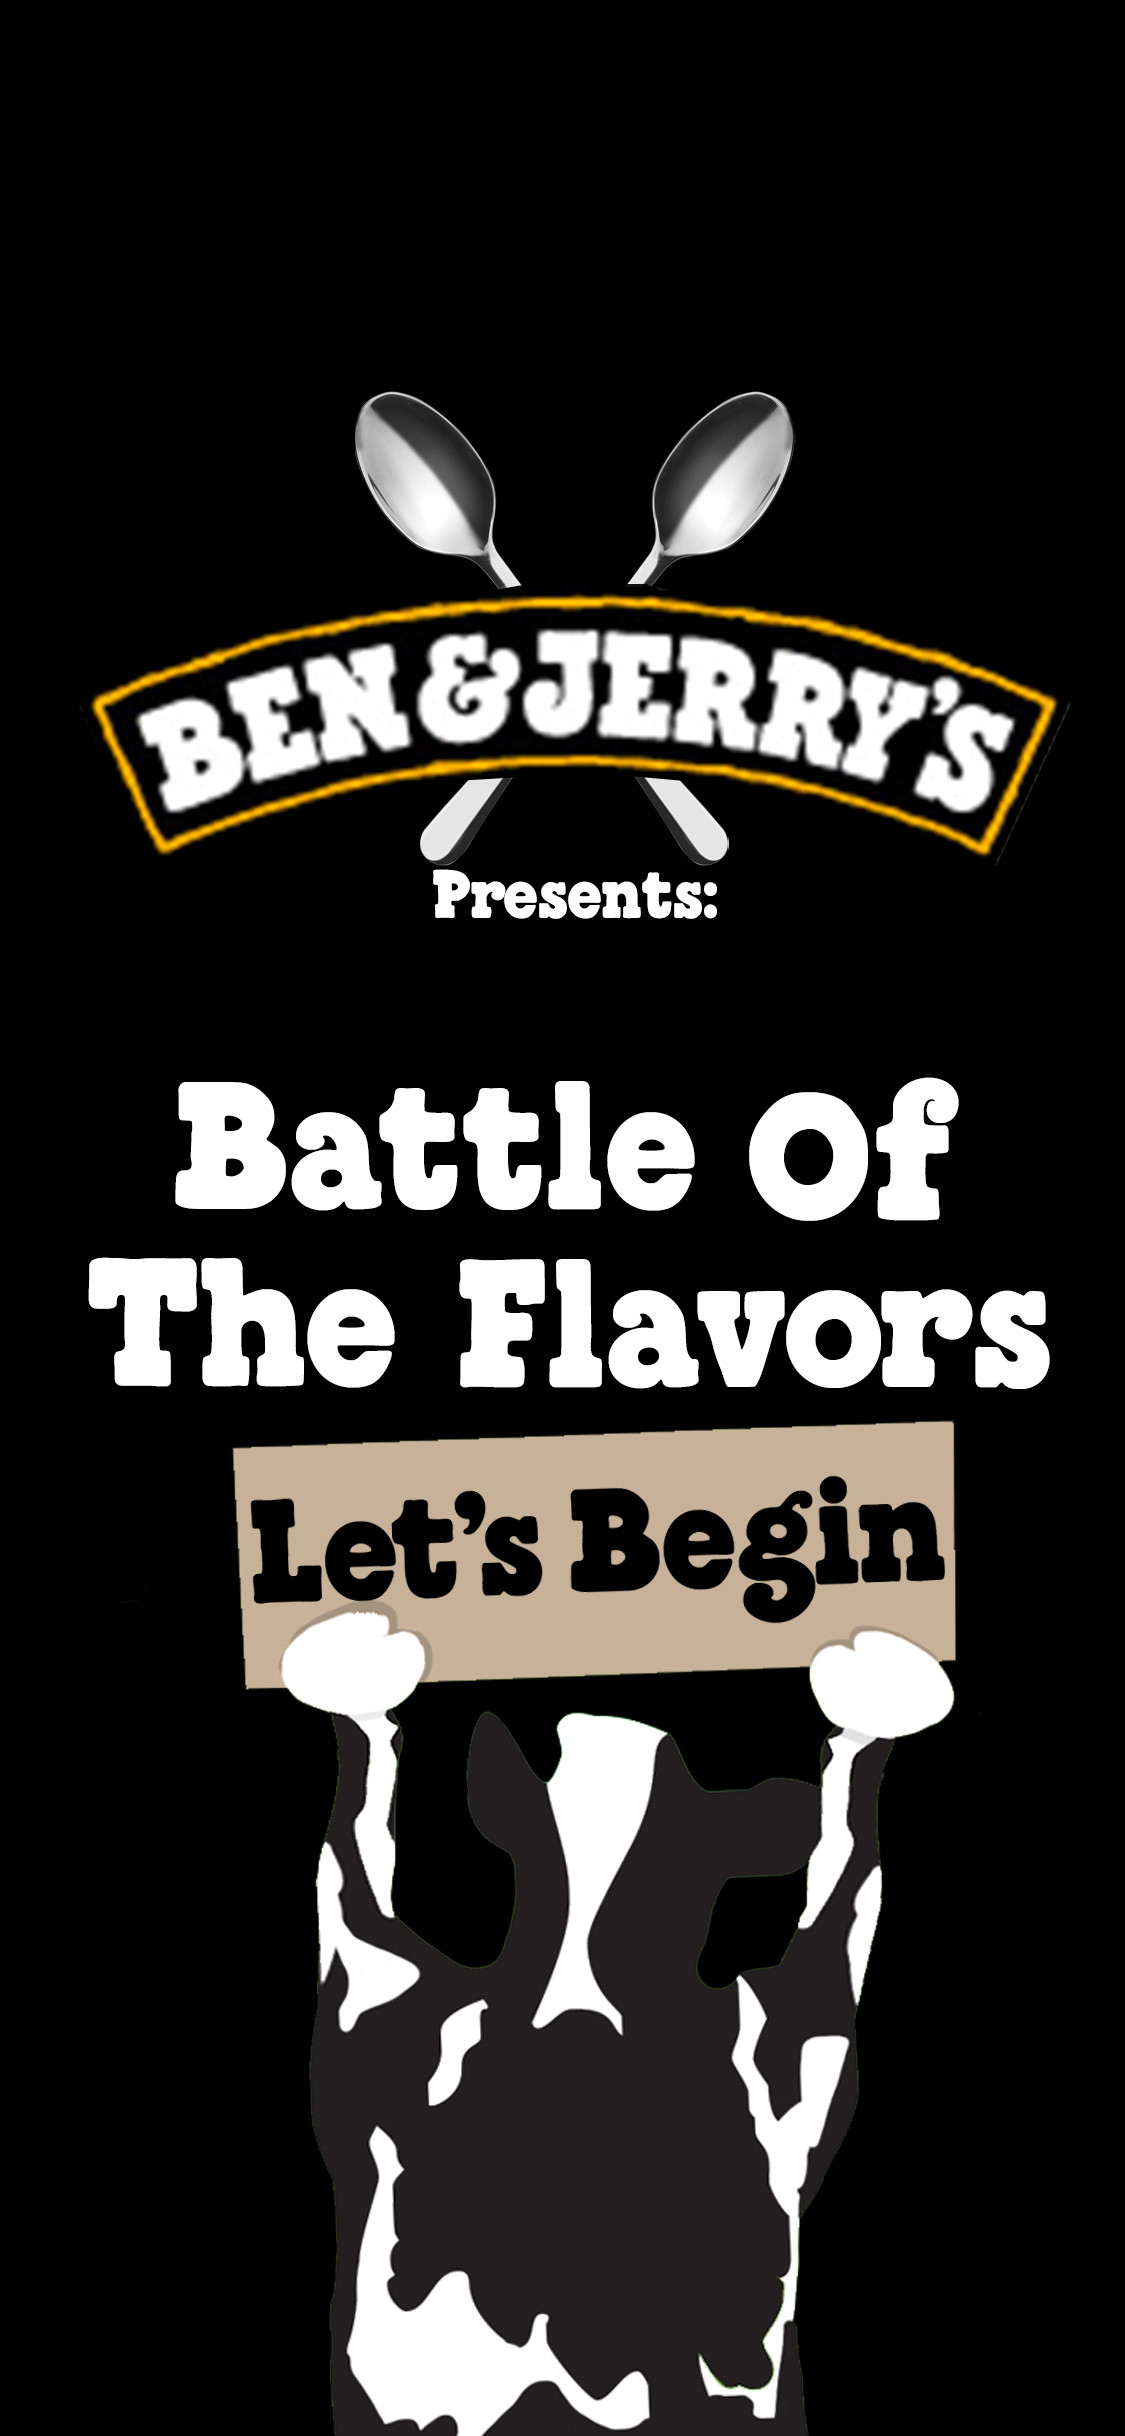 Battle of the flavors. Social Media